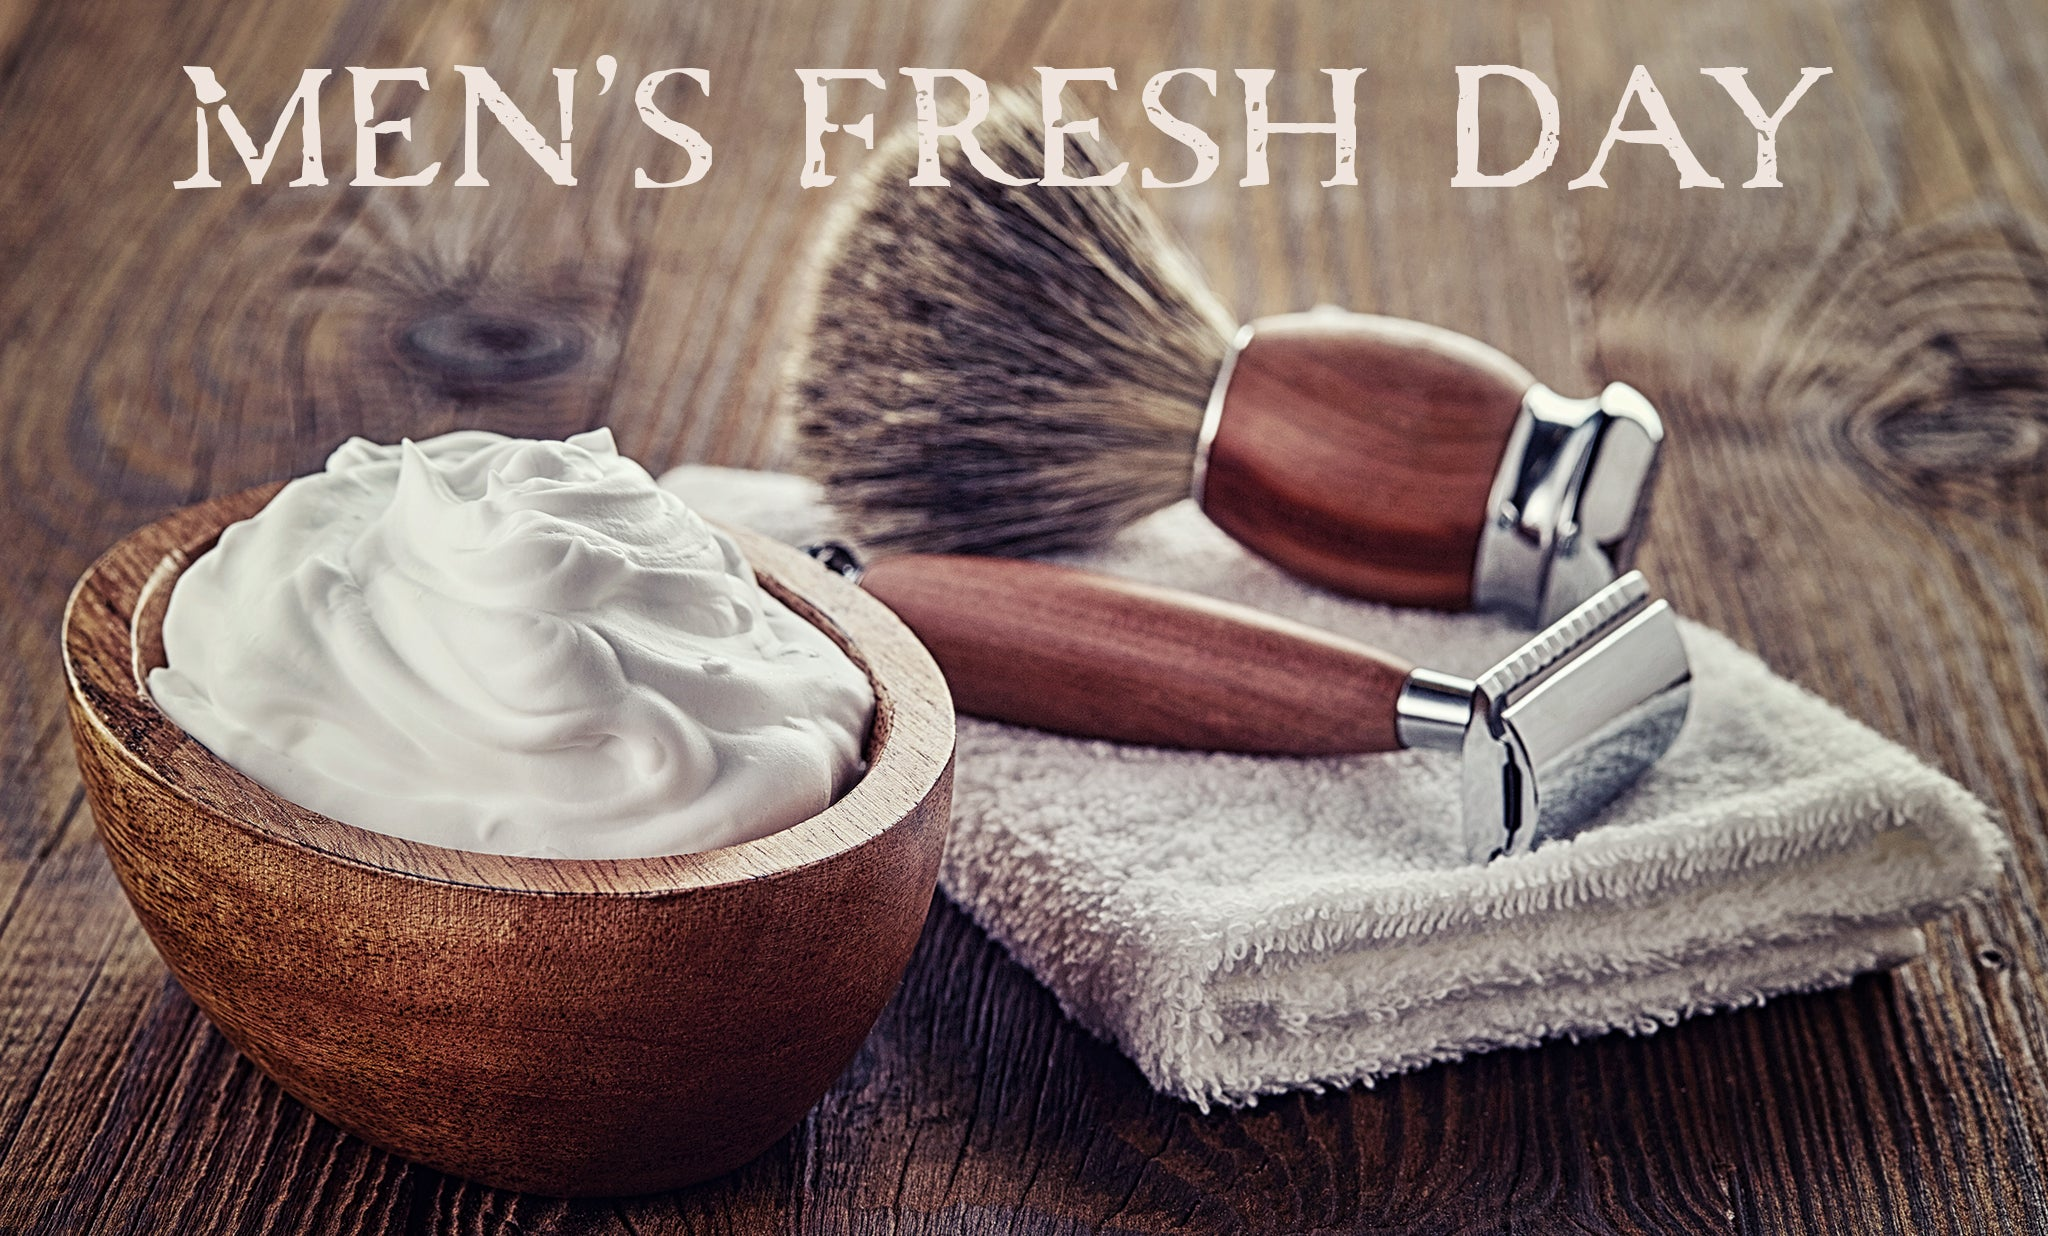 men's fresh day organic skin care by Wingsets